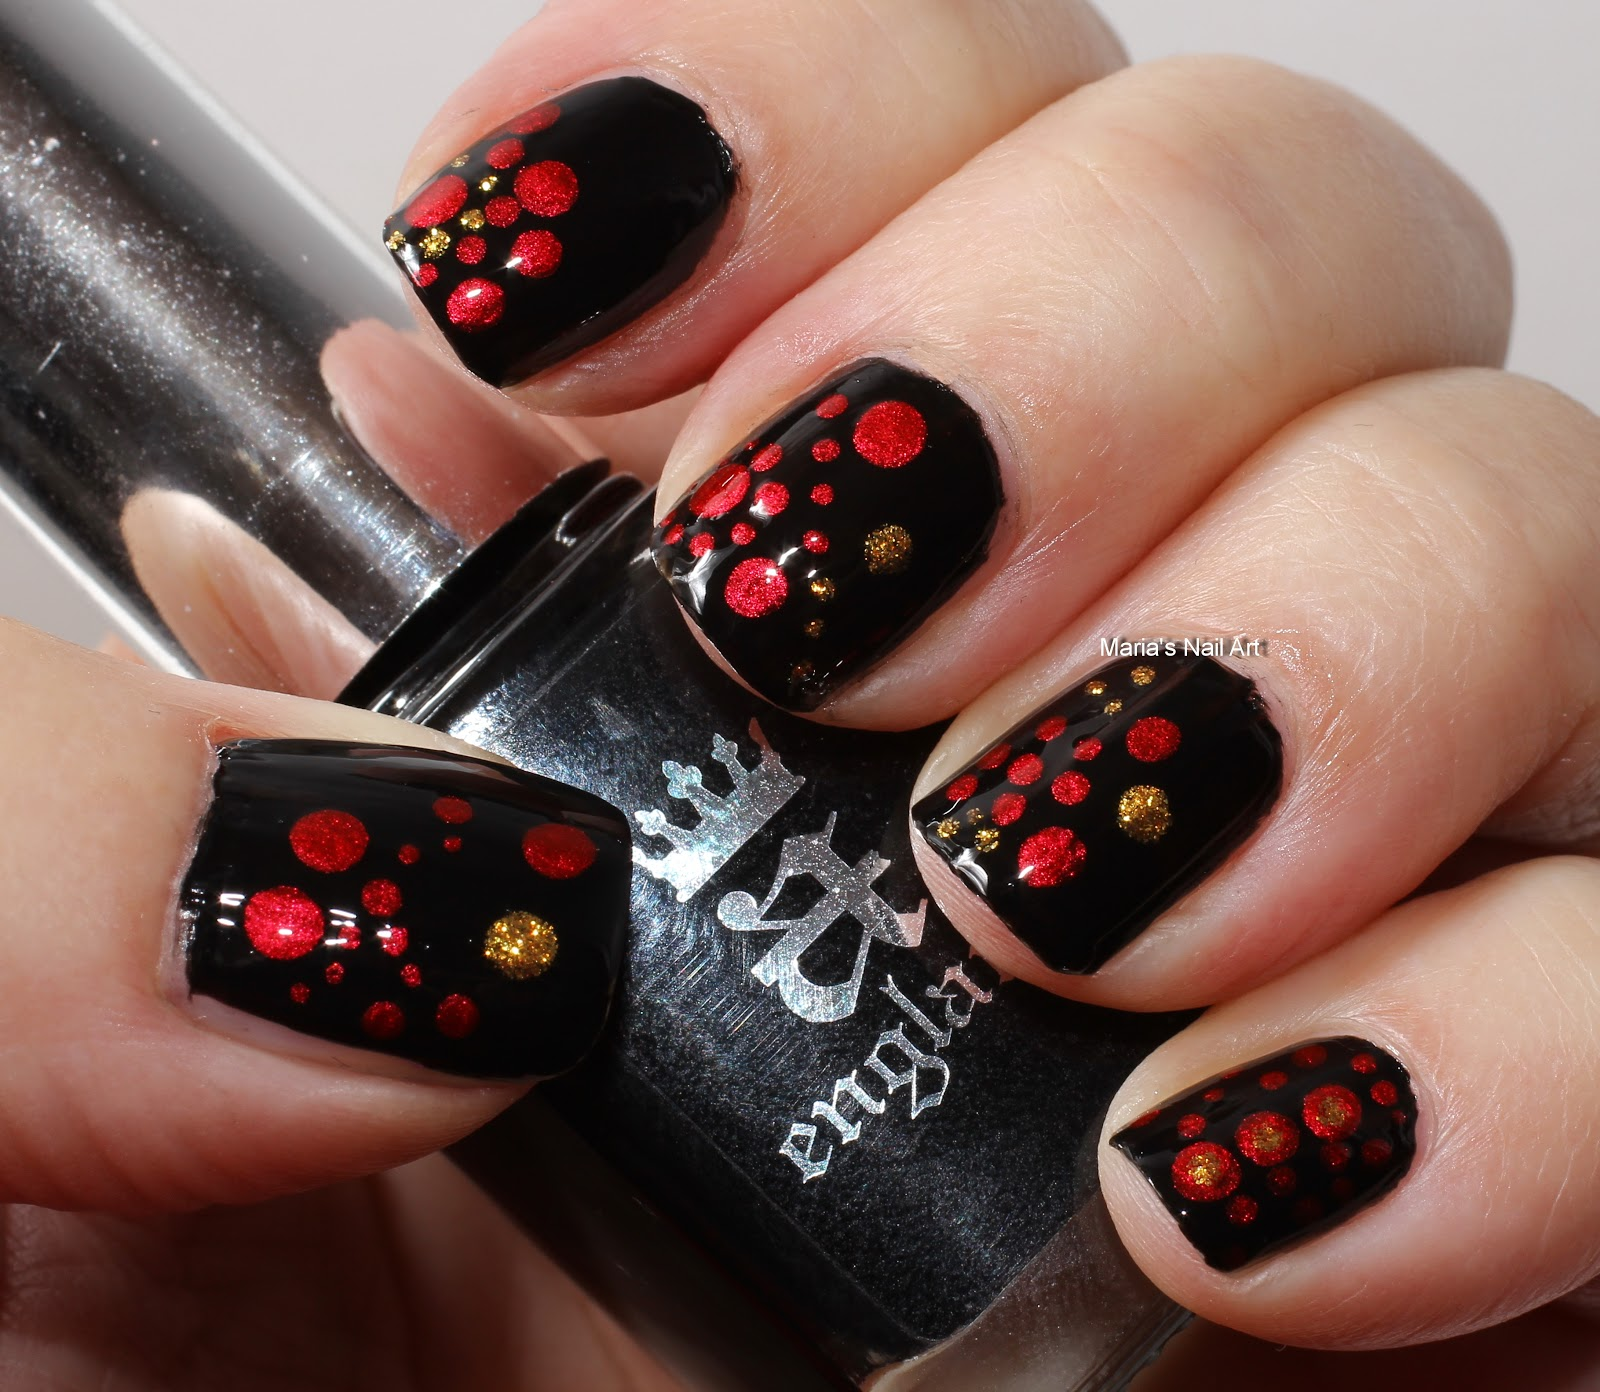 Marias Nail Art And Polish Blog: Black, Red, Gold Dotticure